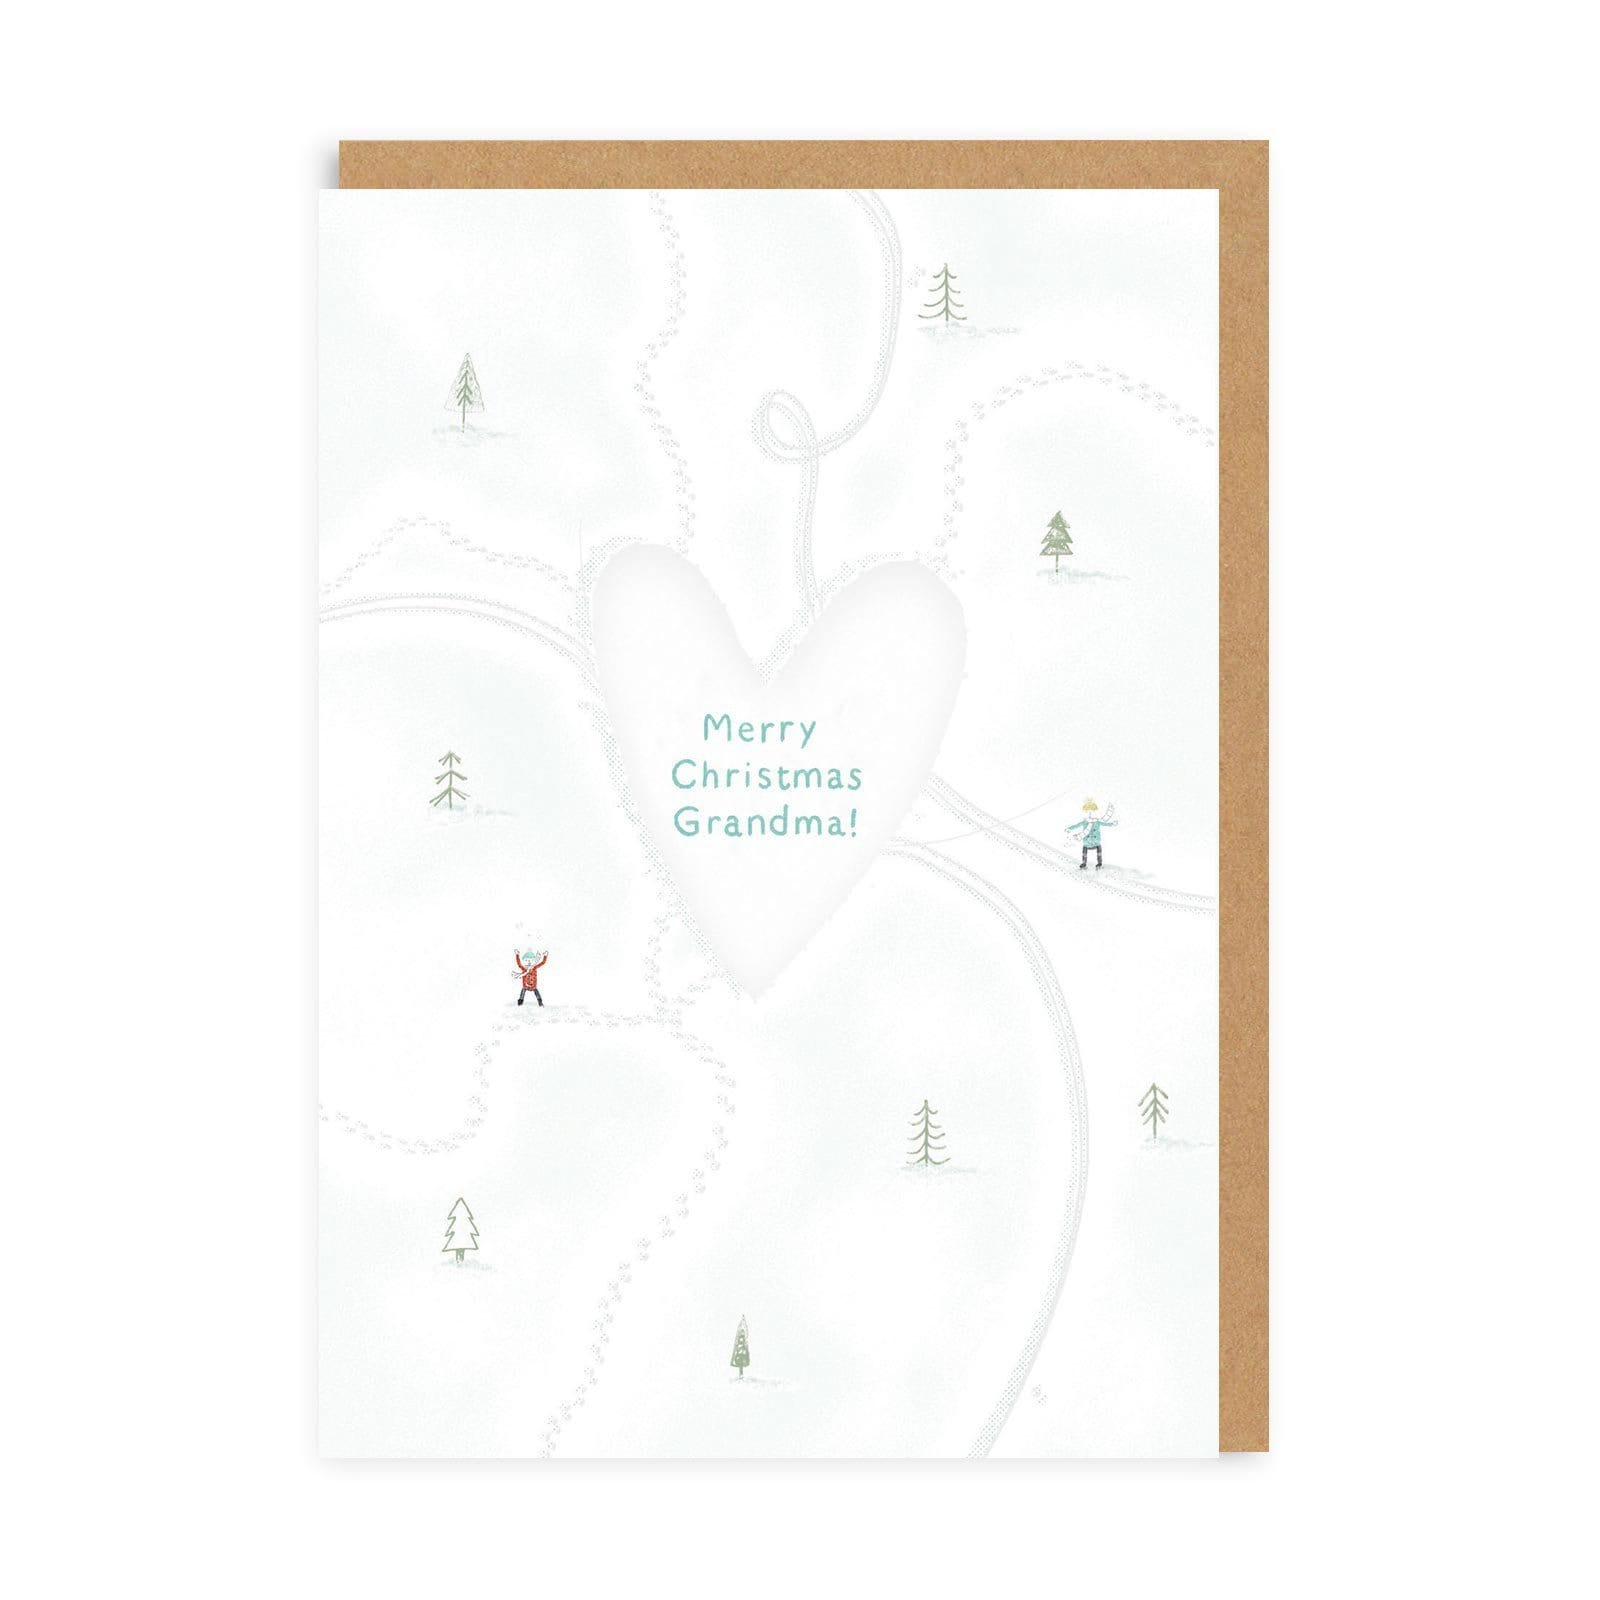 Grandma Love Heart Christmas Greeting Card